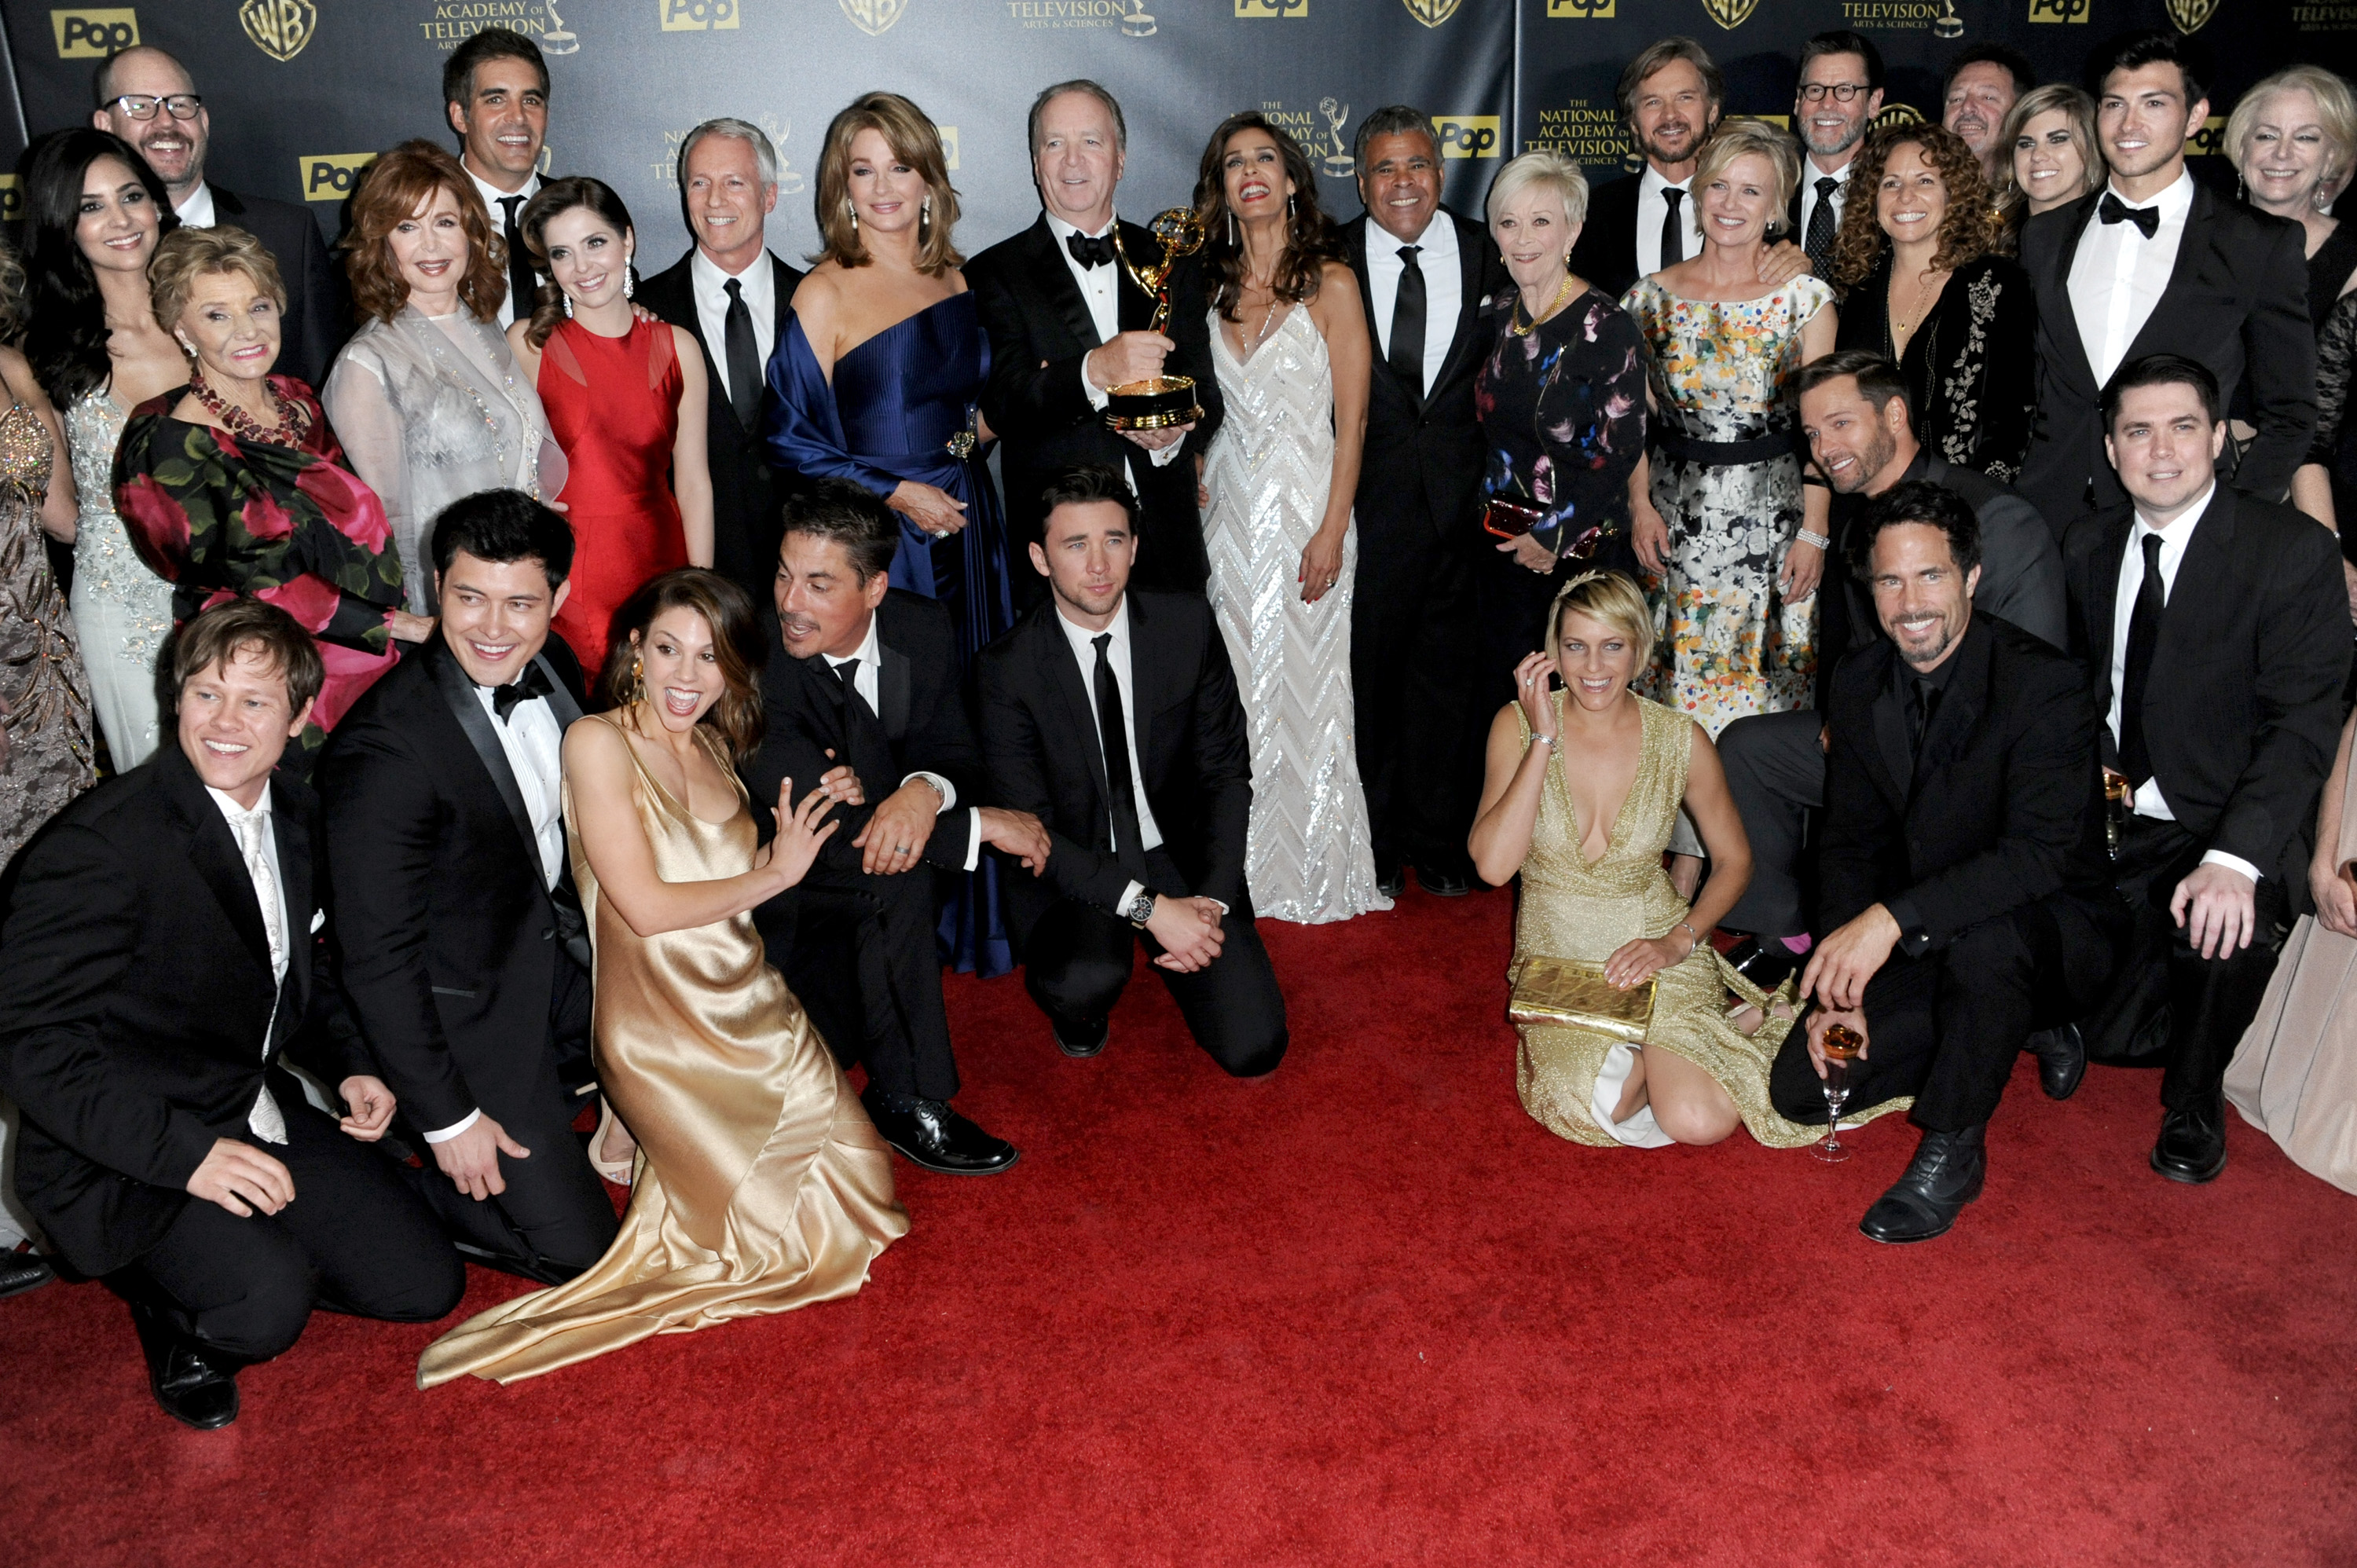 42nd Annual Daytime Emmy Awards - Press Room